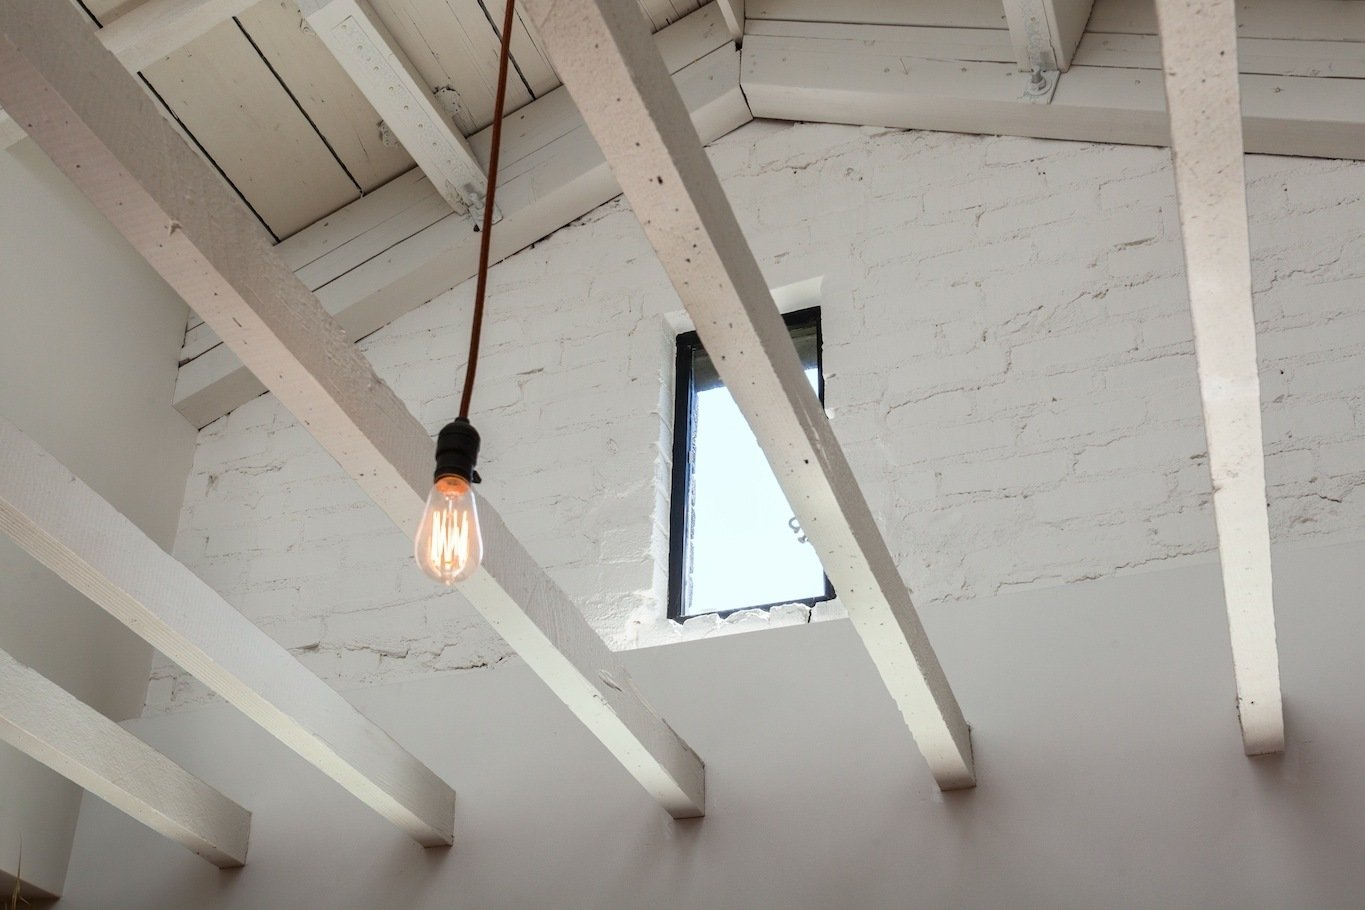 Detail of open ceiling framing, pendant light and window (former attic vent) within existing painted brick wall Tagged: Living Room and Pendant Lighting.  Ashland Residence by Hsu McCullough